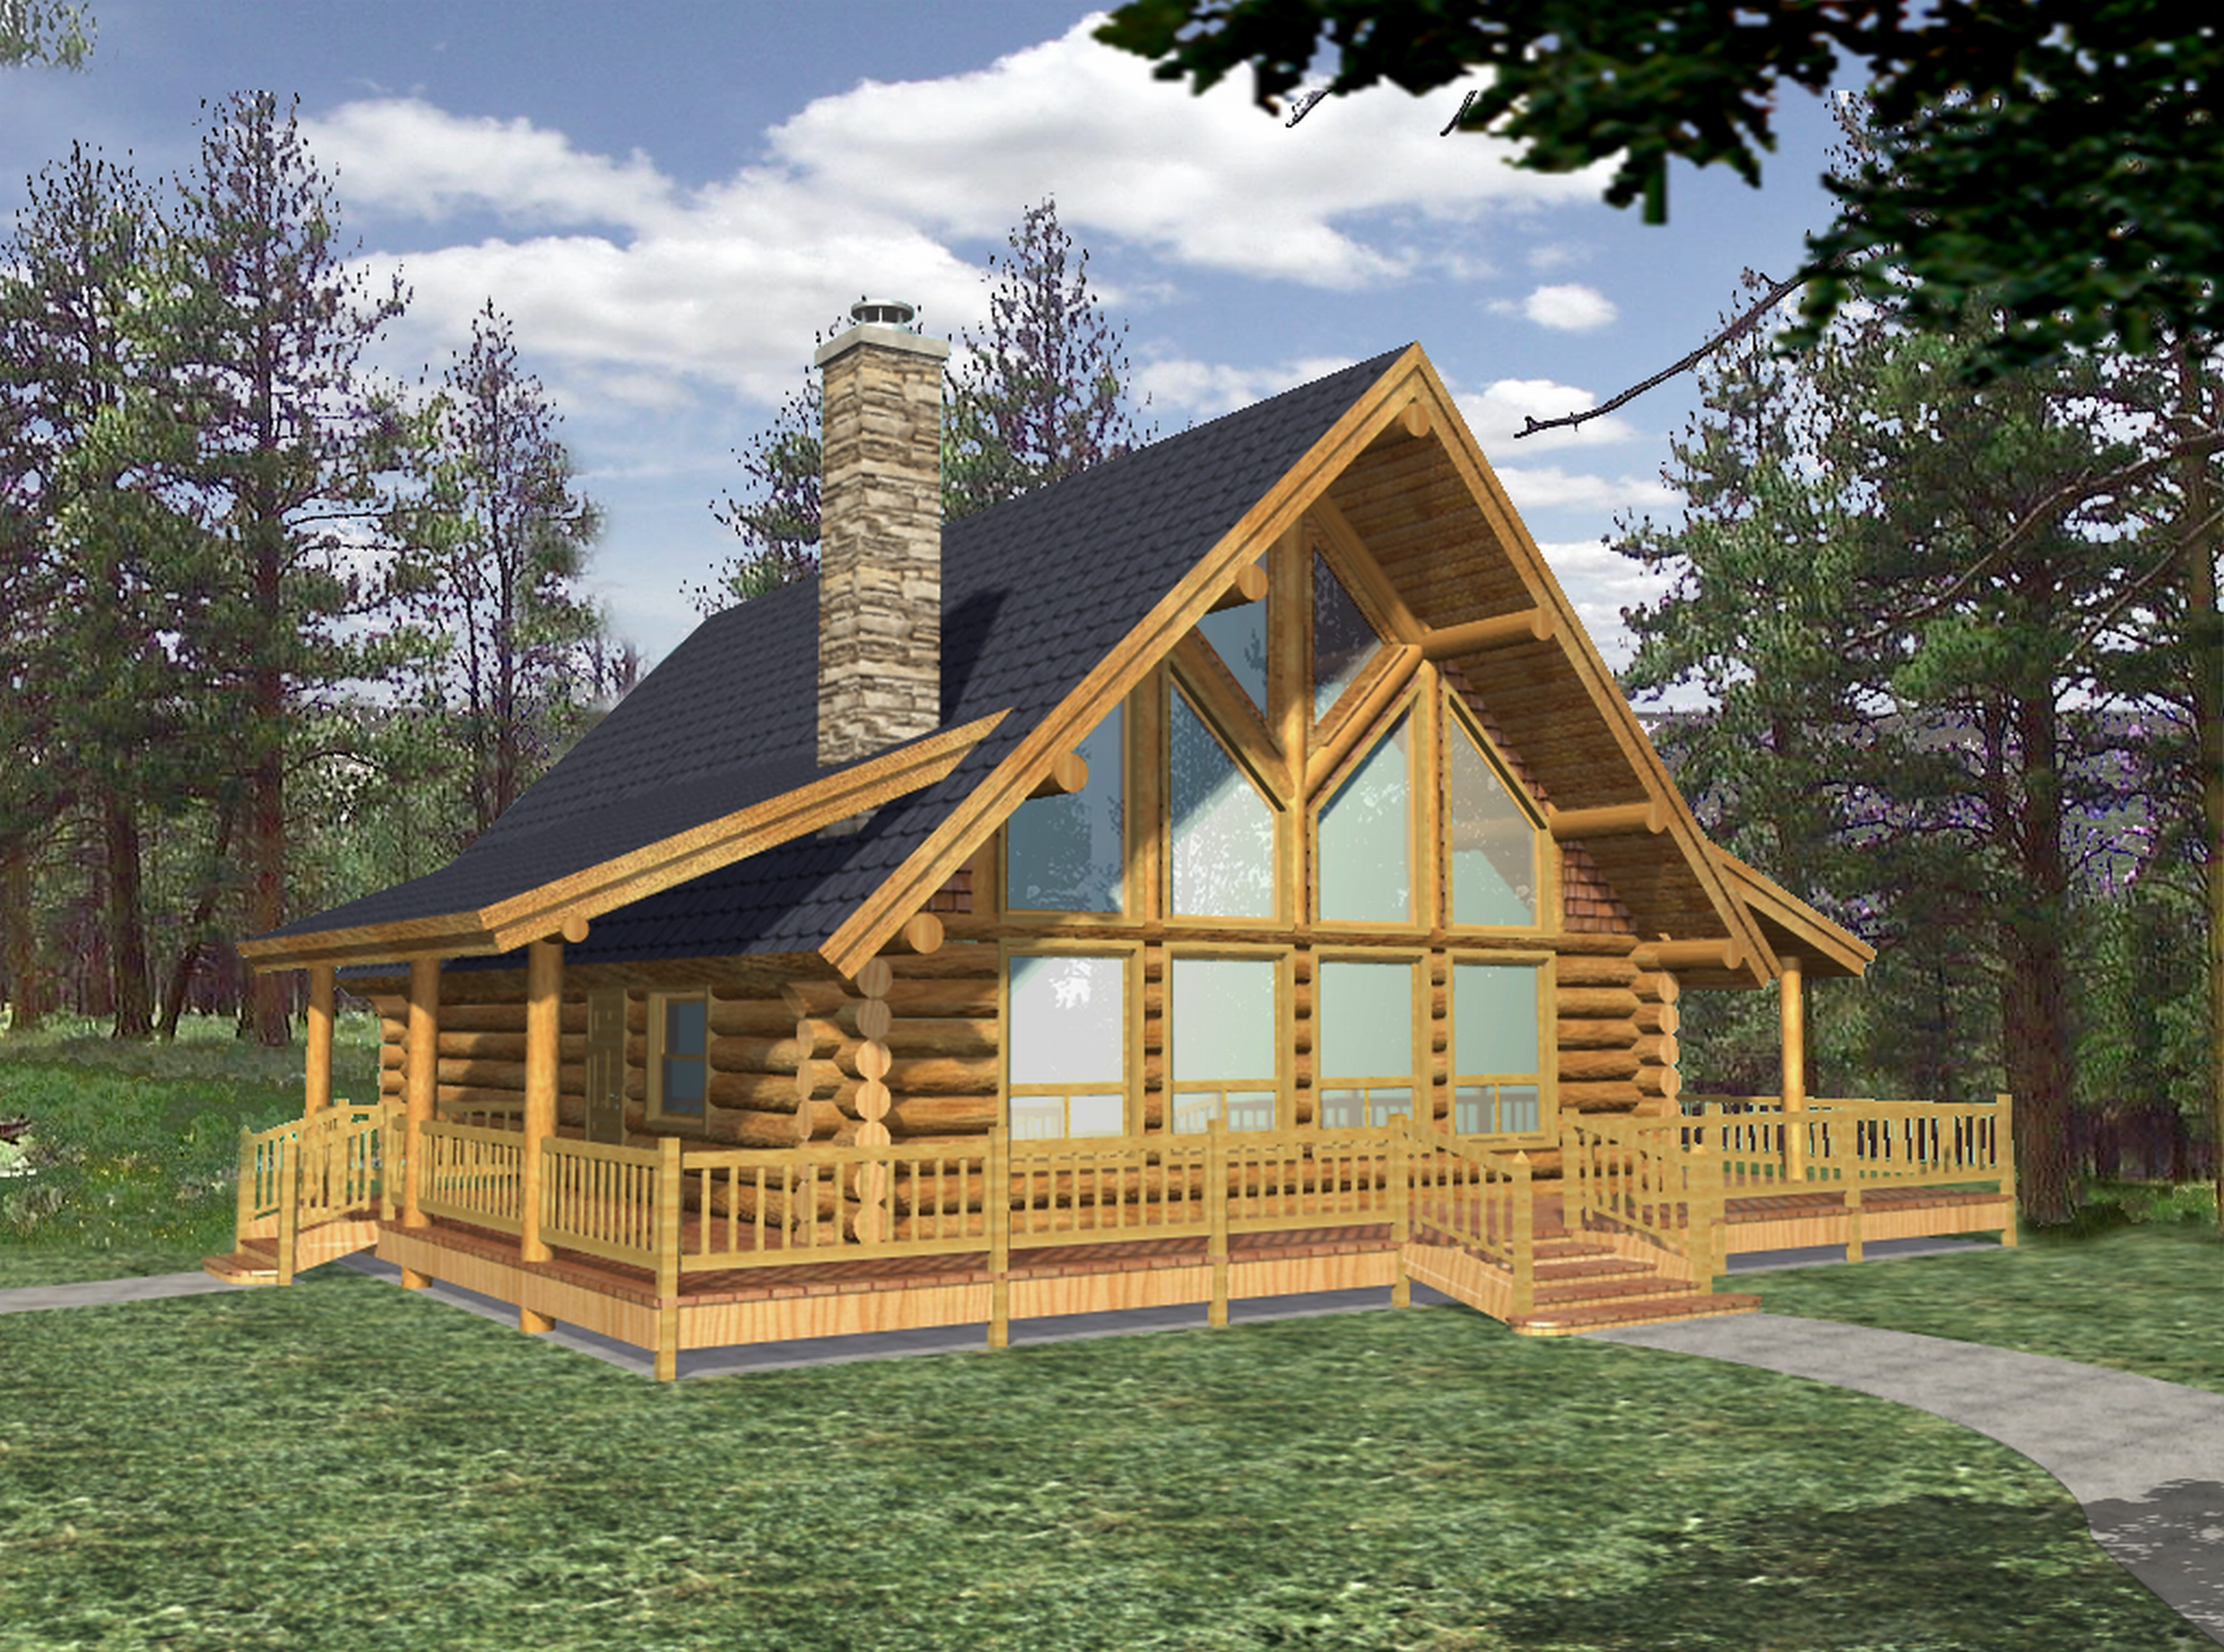 Small Log Cabins to Build Small Log Cabin Home House Plans ... on winery house plans, small house plans, modern business plans, modern italianate house plans, modern houses on the west coast, colonial house plans, traditional house plans, modern house with windows, unique house plans, cottage house plans, contemporary house plans, modern craftsman house plans, chic house plans, modern classic house plans, modern old house plans, modern palace plans, mediterranean house plans, carriage house plans, modern triplex plans, rustic home plans,